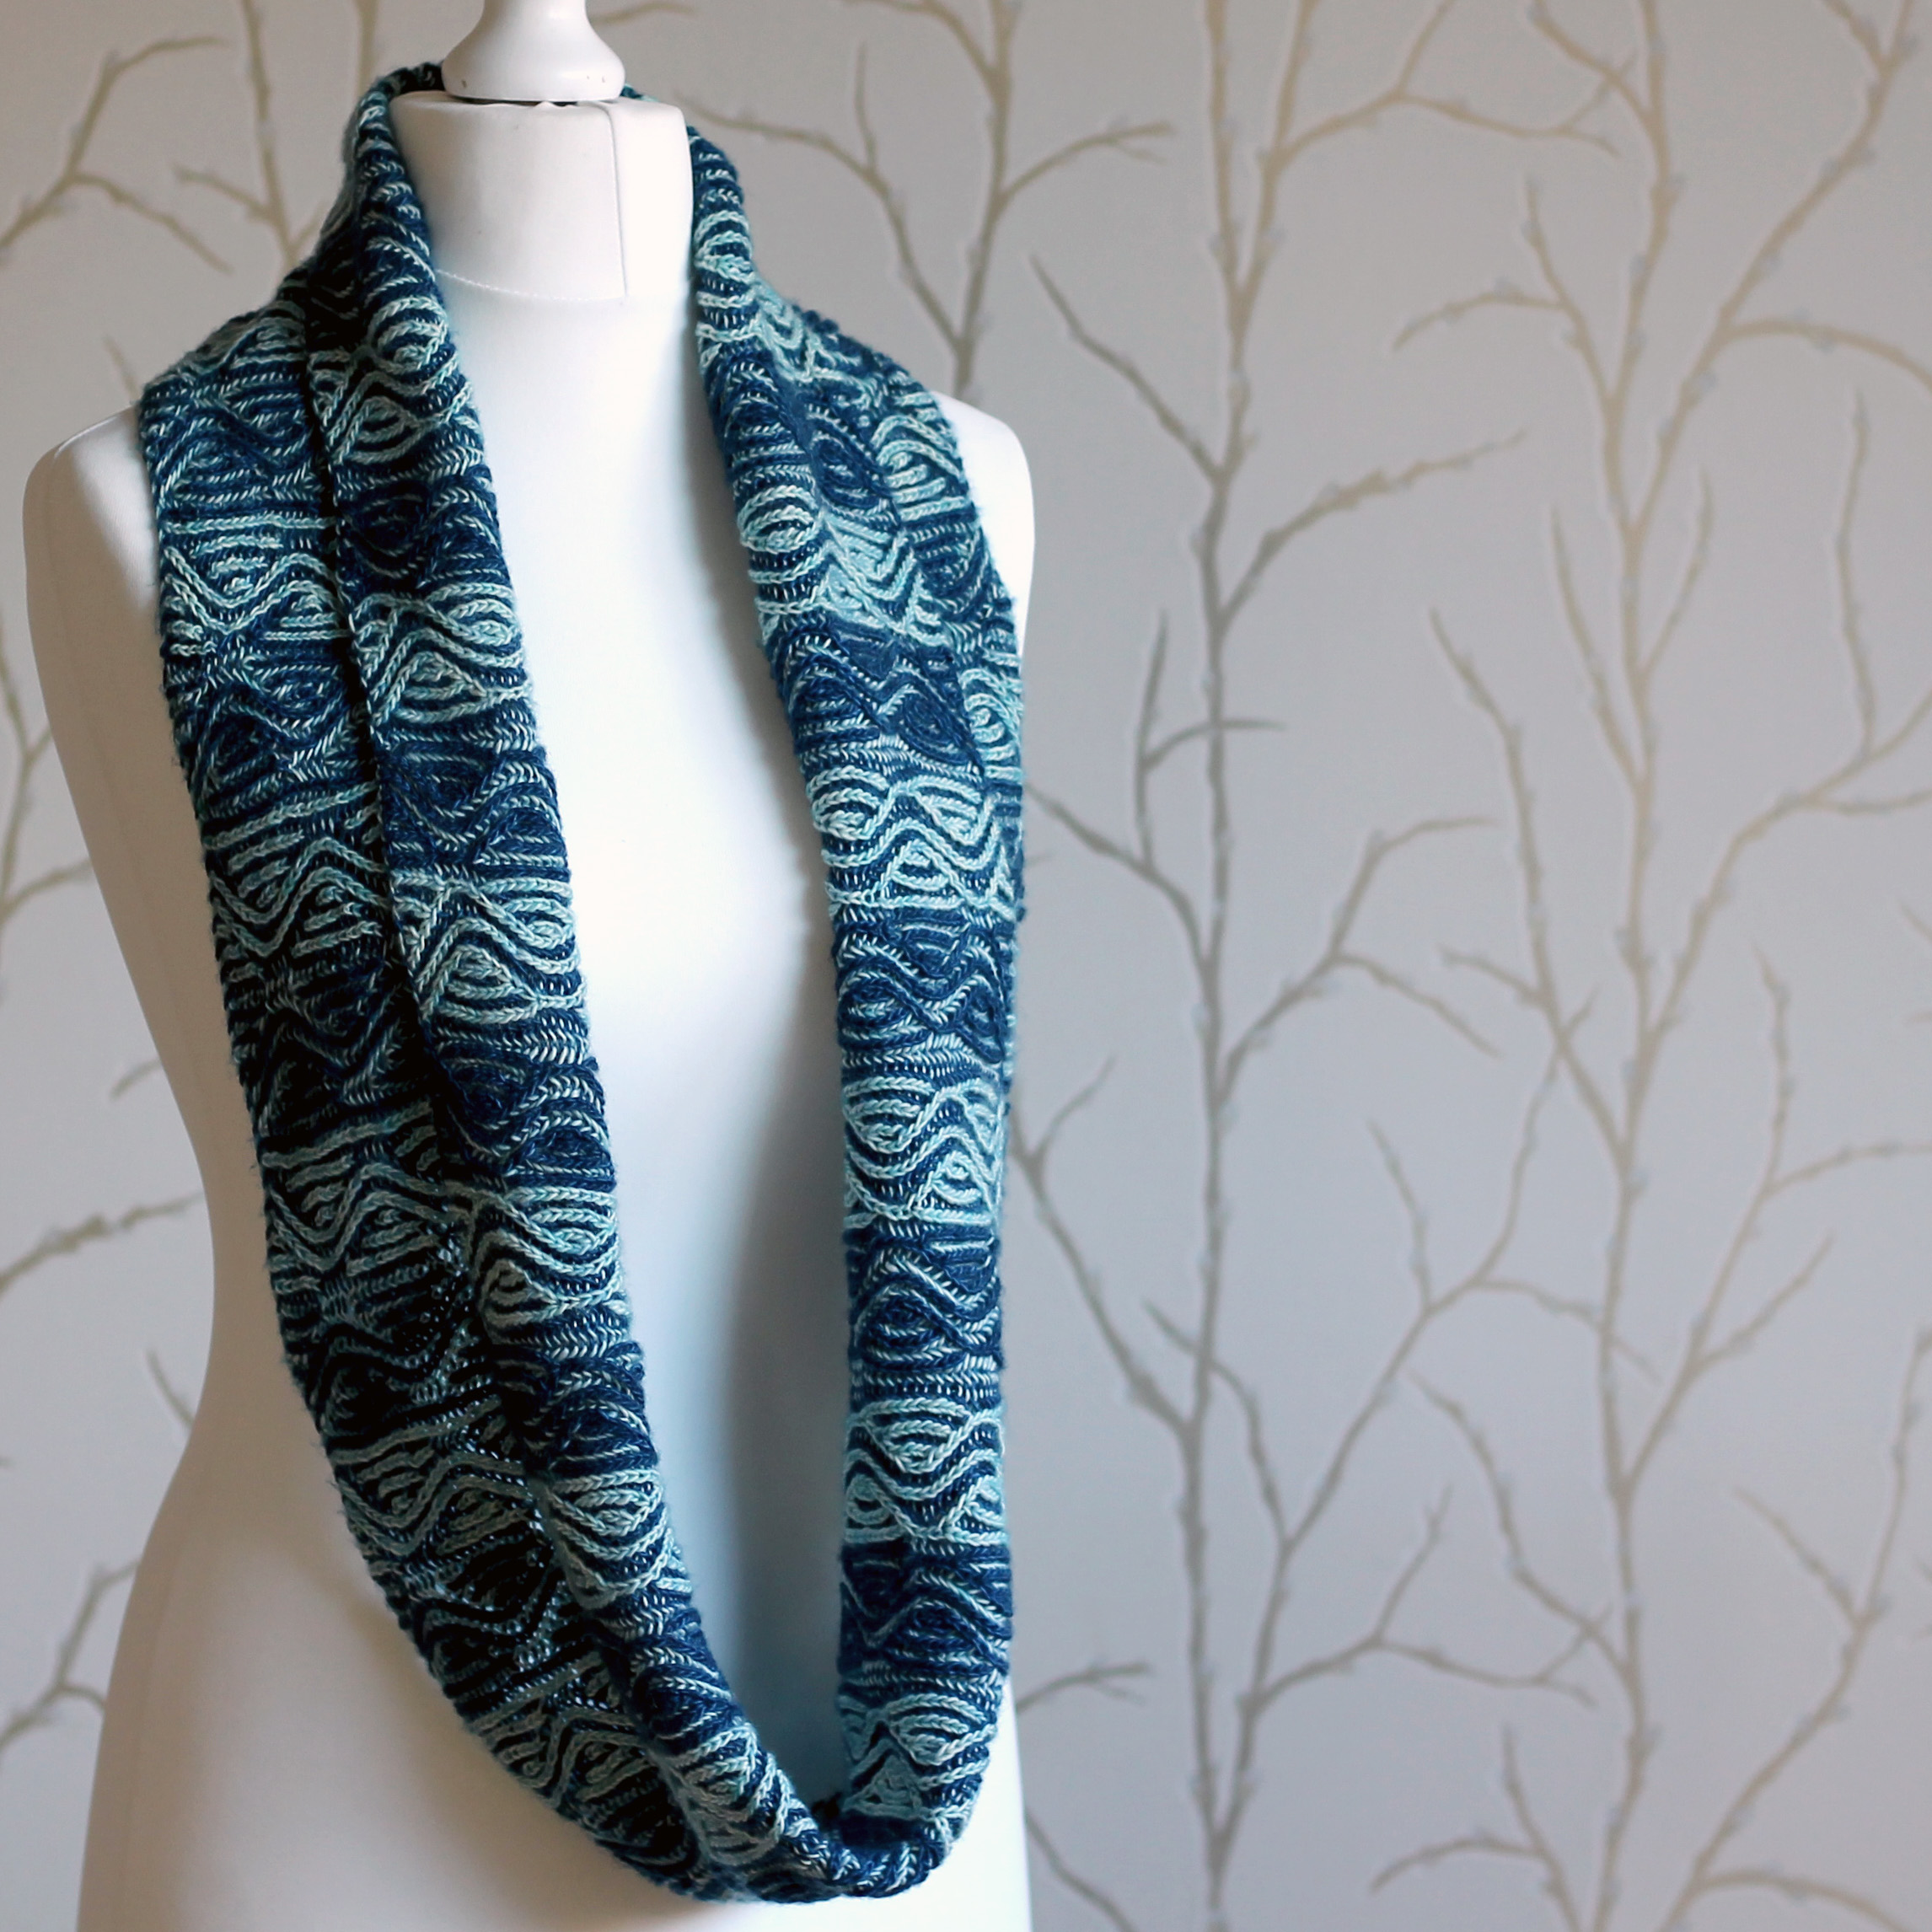 A mannequin displaying a long brioche cowl with dark and light blue vertical stripes and a faux cable pattern